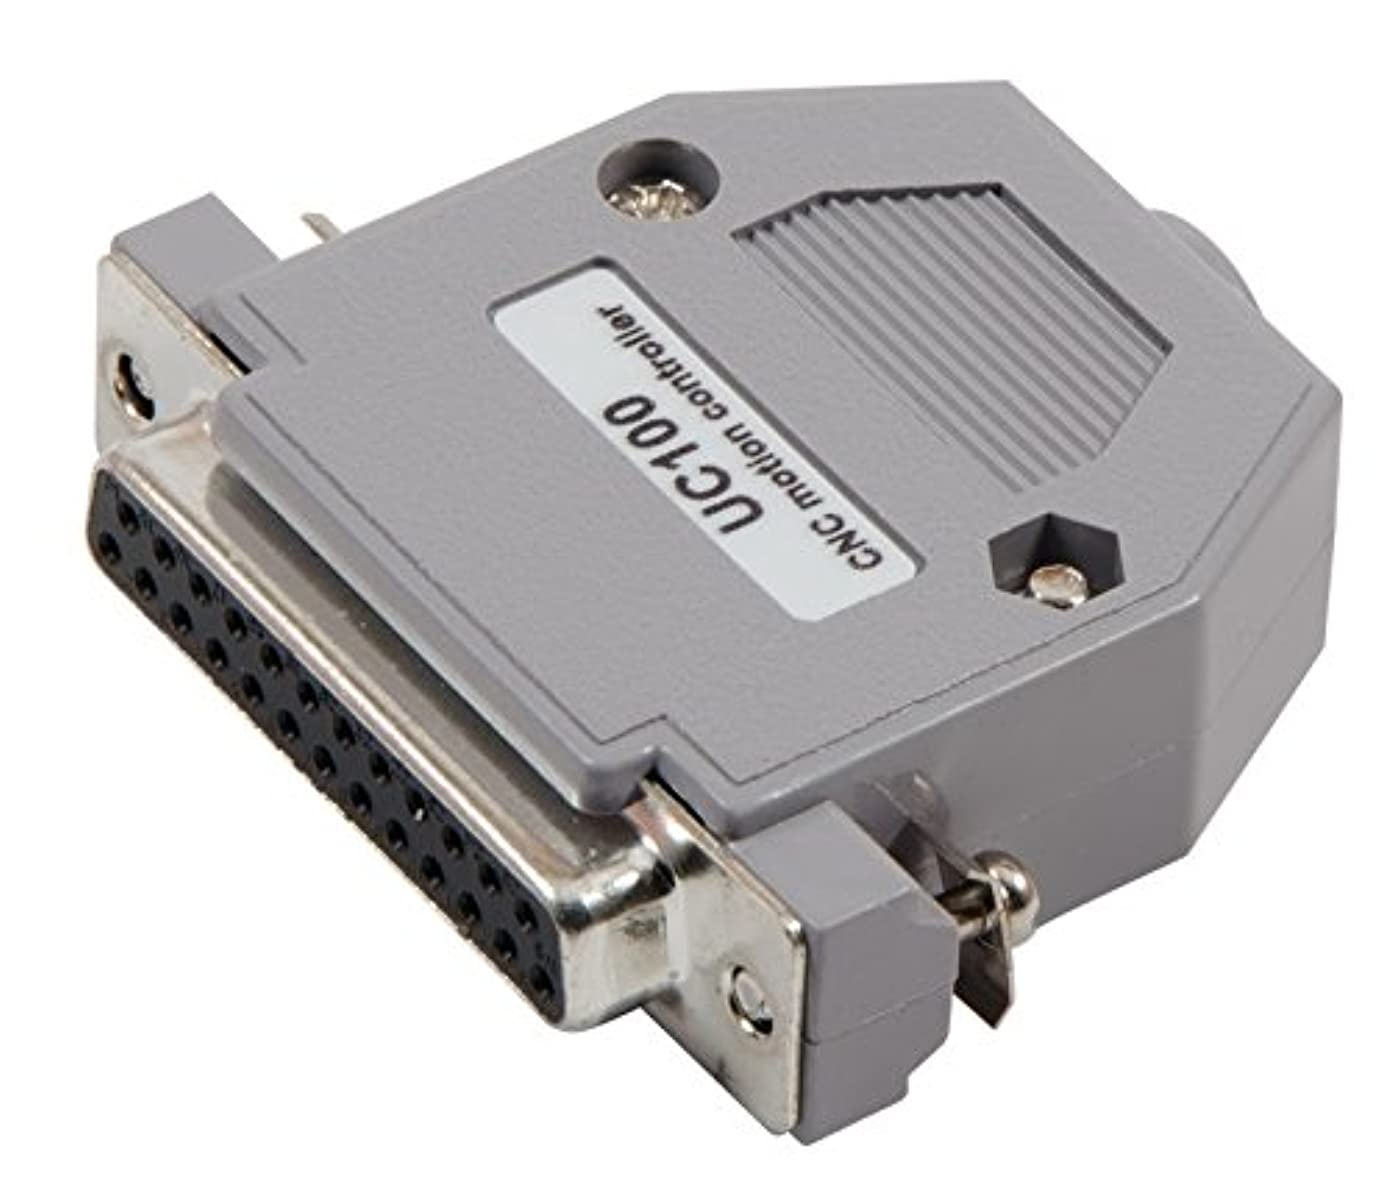 CNCdrive UC100 USB to Parallel CNC Motion Controller